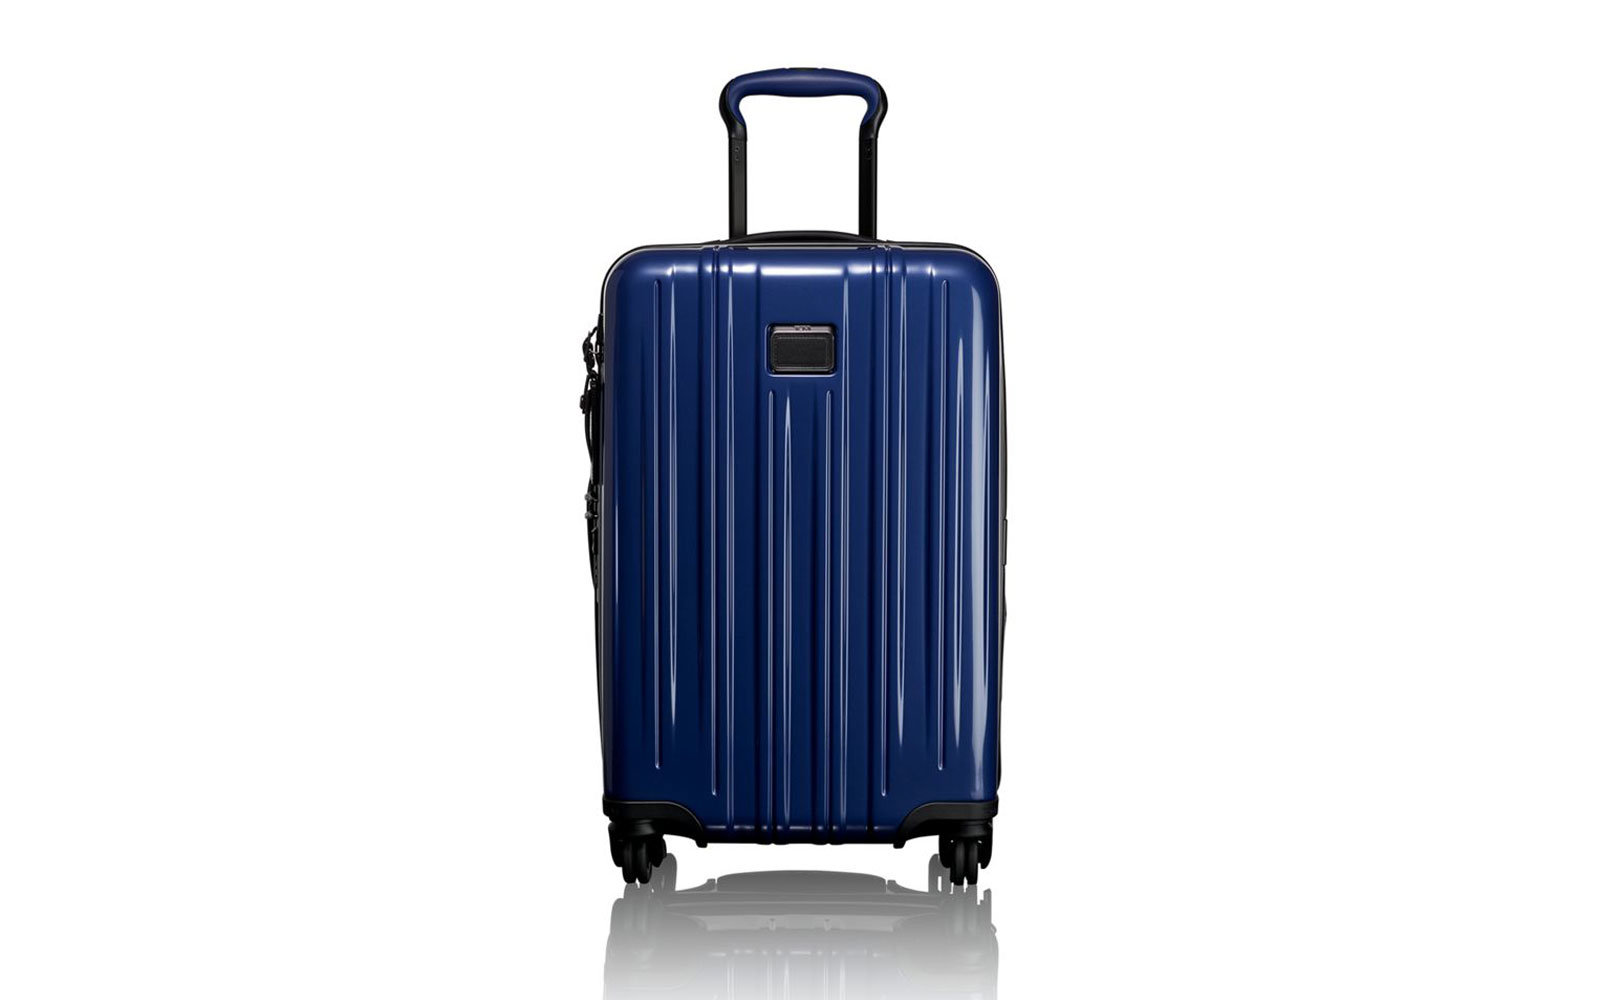 Tumi V3 International Luggage